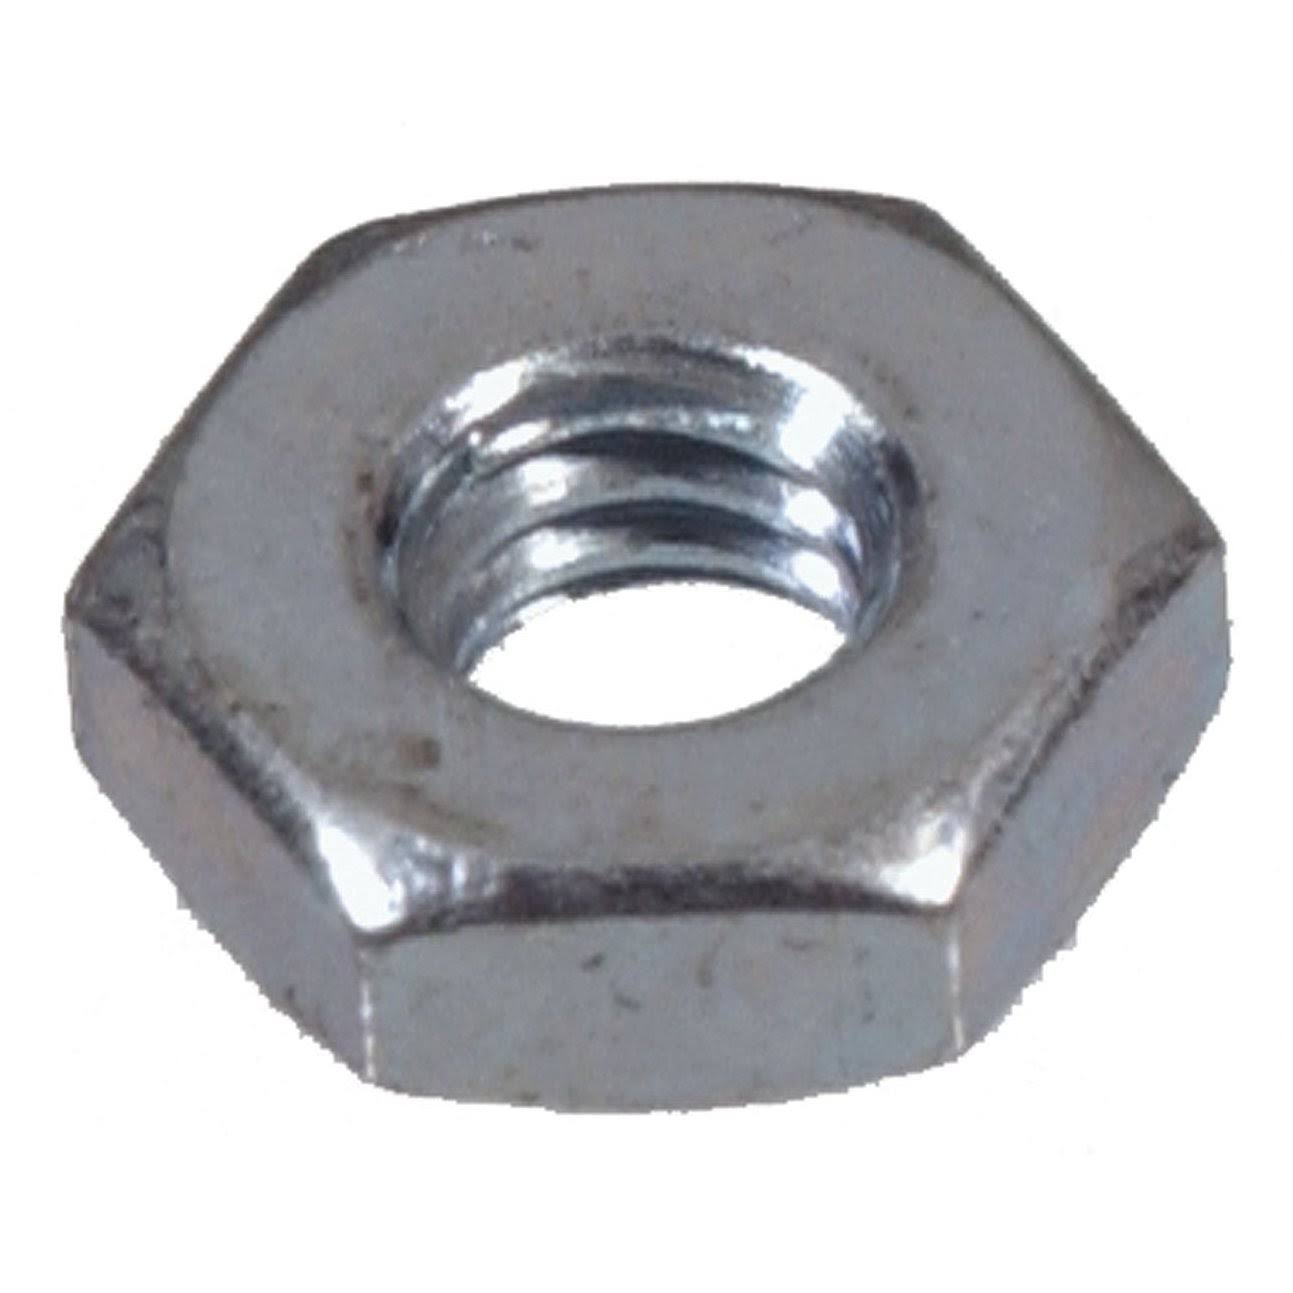 The Hillman Group Standard Hex Nuts - 100ct, #10-24 Zinc Plated